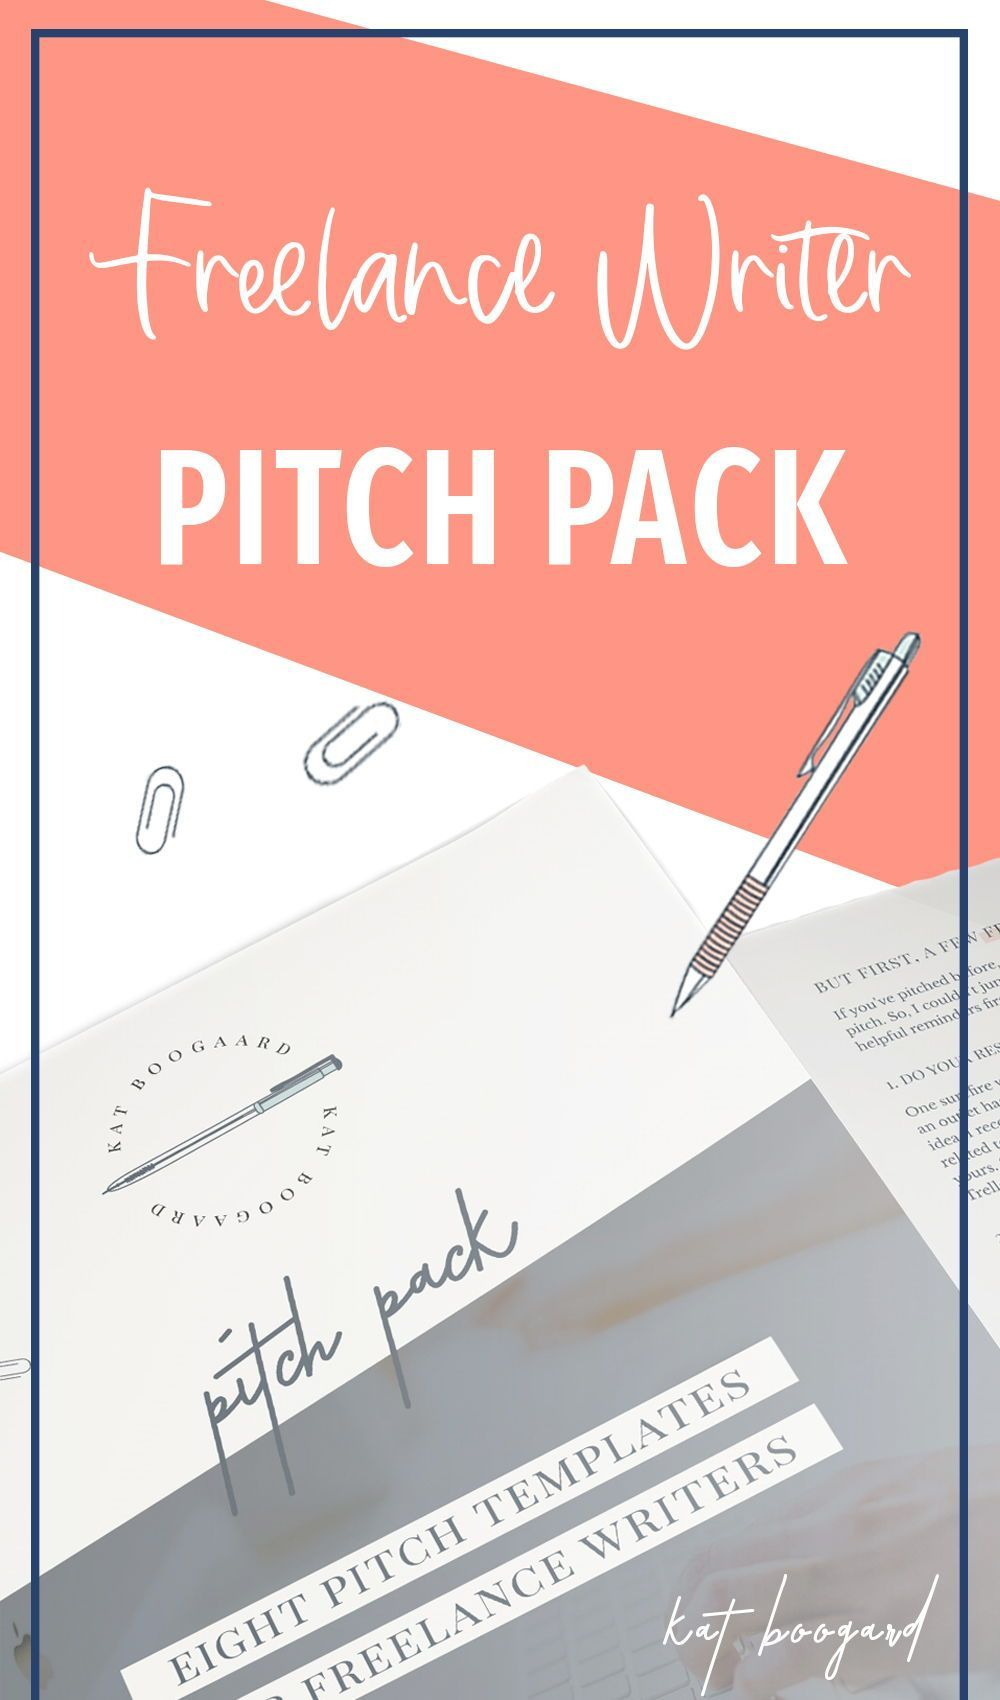 Pitch Pack 8 Pitch Templates For Freelance Writers Freelance Writing Freelance Writer Writing Tips